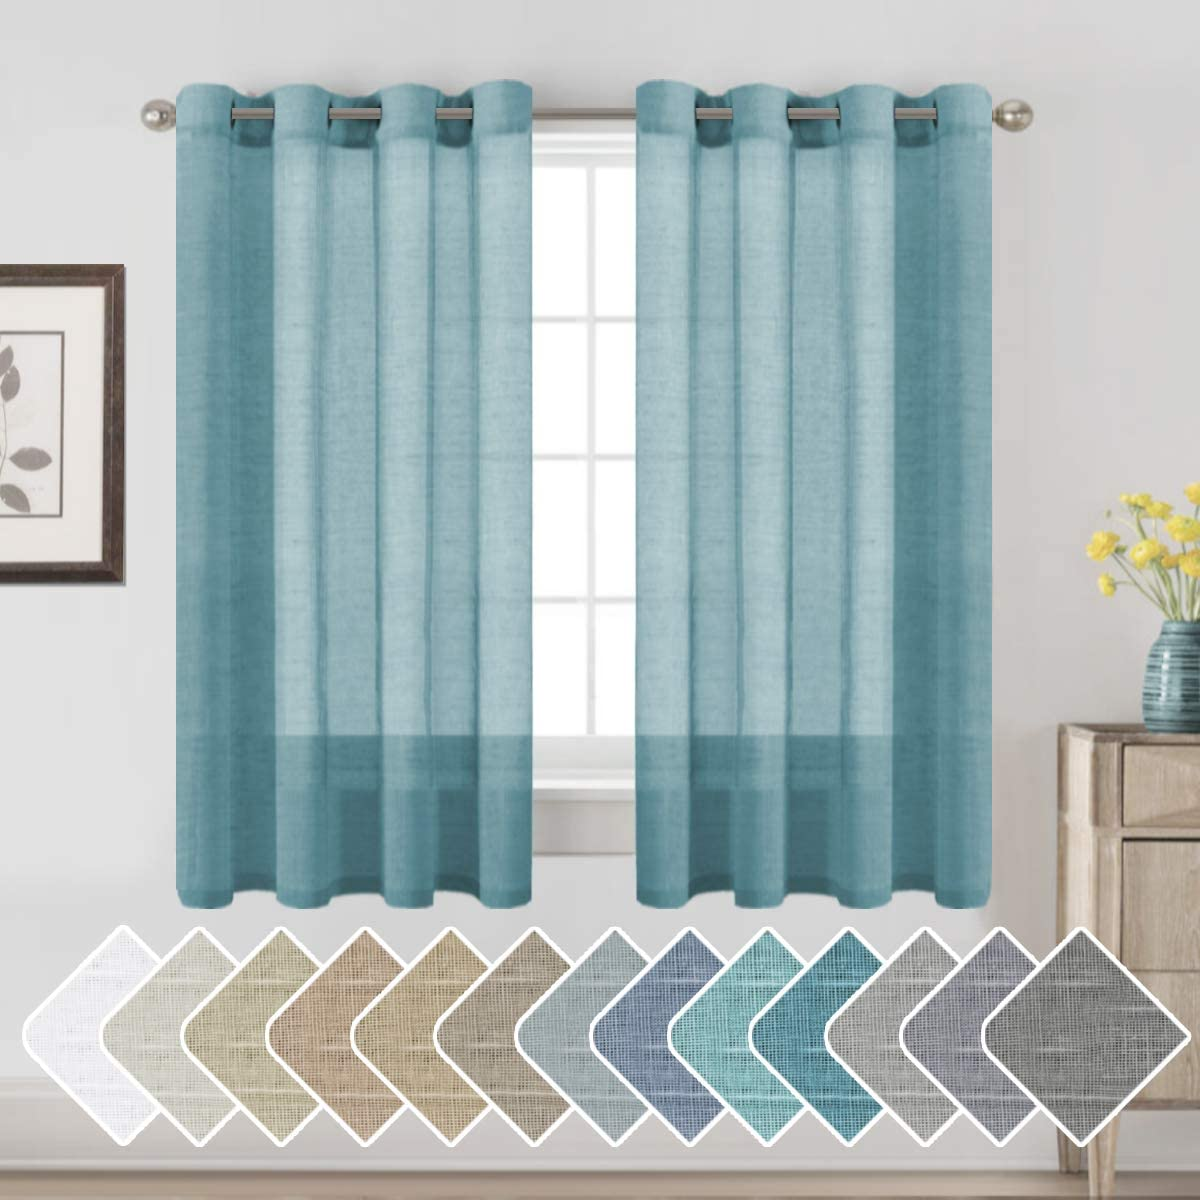 H.VERSAILTEX Window Treatments Linen Curtain Panels Open Weave - Natural Linen Blended Sheer Curtains with Nickel Grommet for Living Room, Privacy Assured (Turquoise, 52 by 63 Inch, Set of 2)